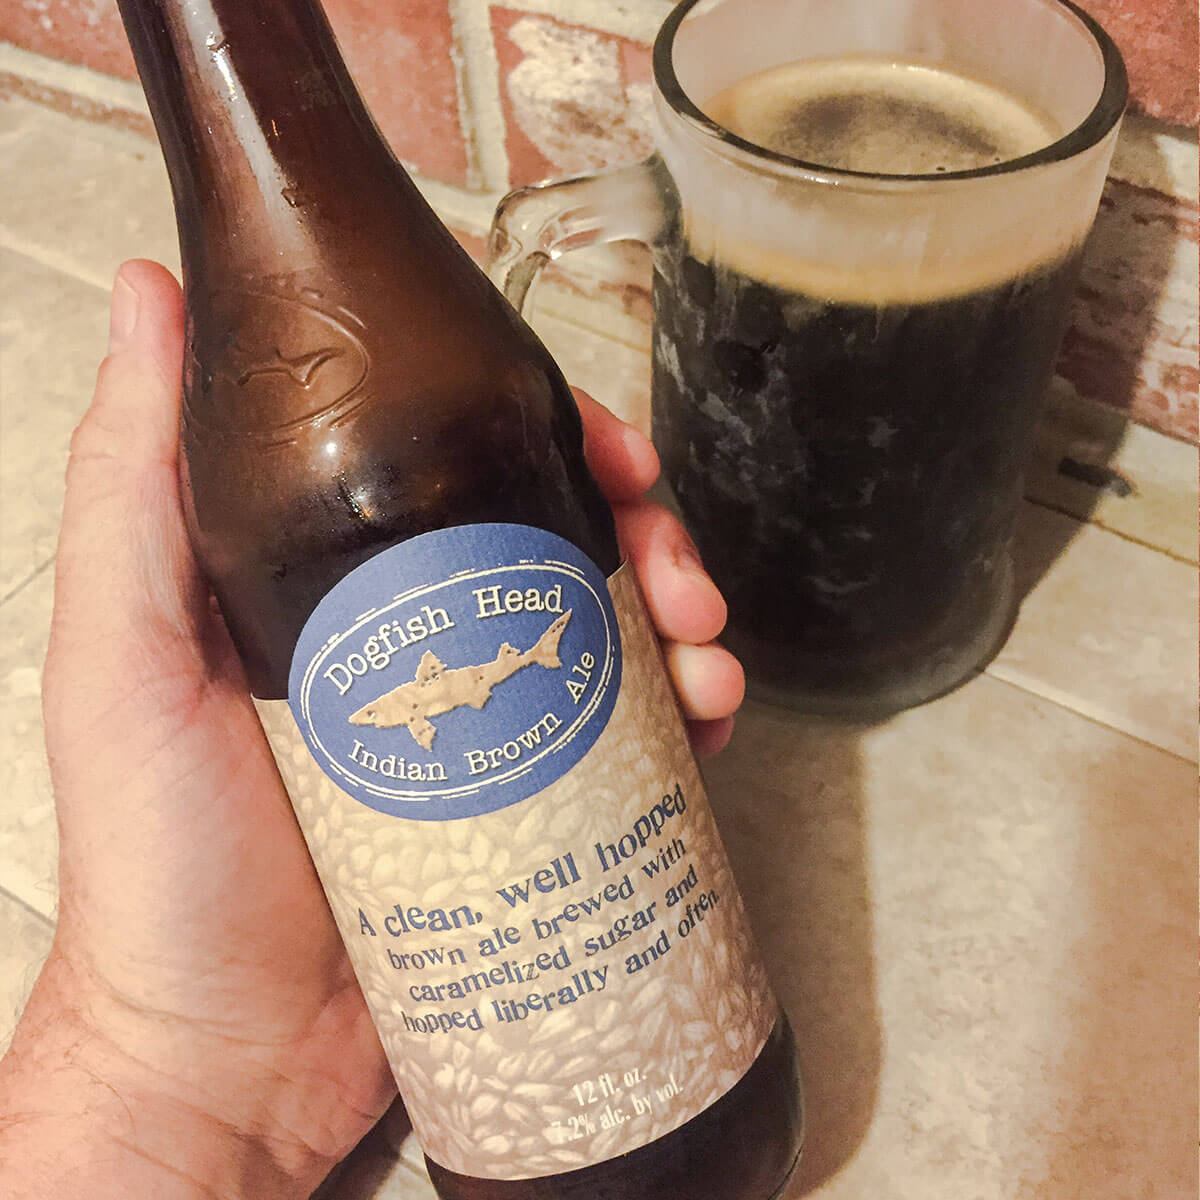 Indian Brown Ale, an American Brown Ale by Dogfish Head Craft Brewery